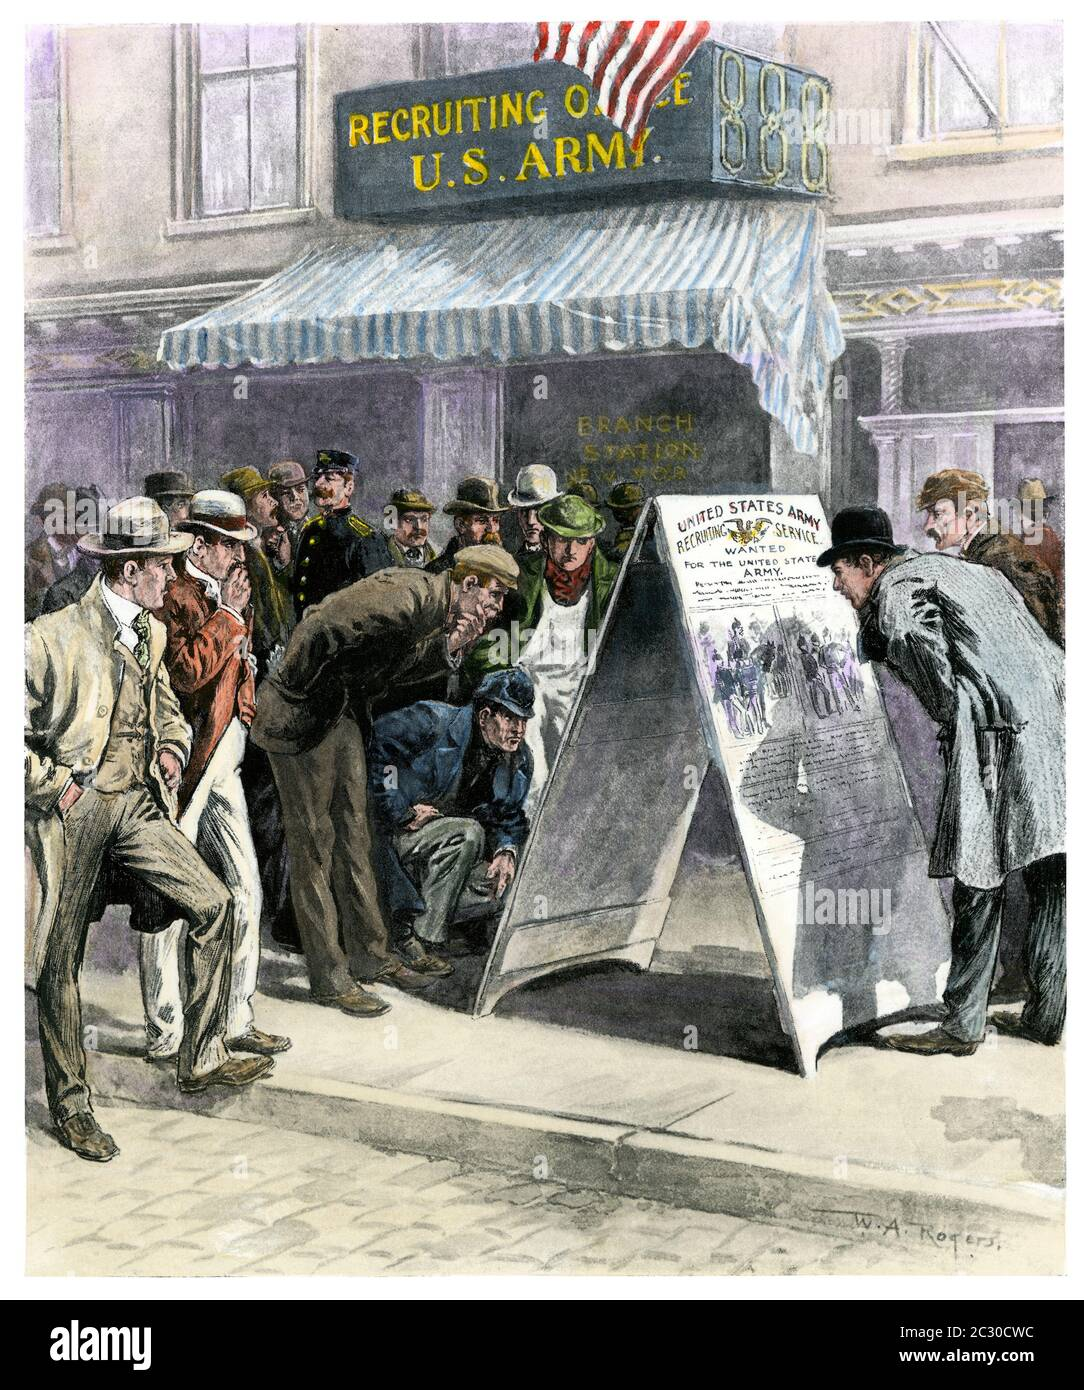 US Army recruiting station in New York City, Spanish-American War, 1898. Hand-colored halftone of a W.A. Rogers illustration Stock Photo